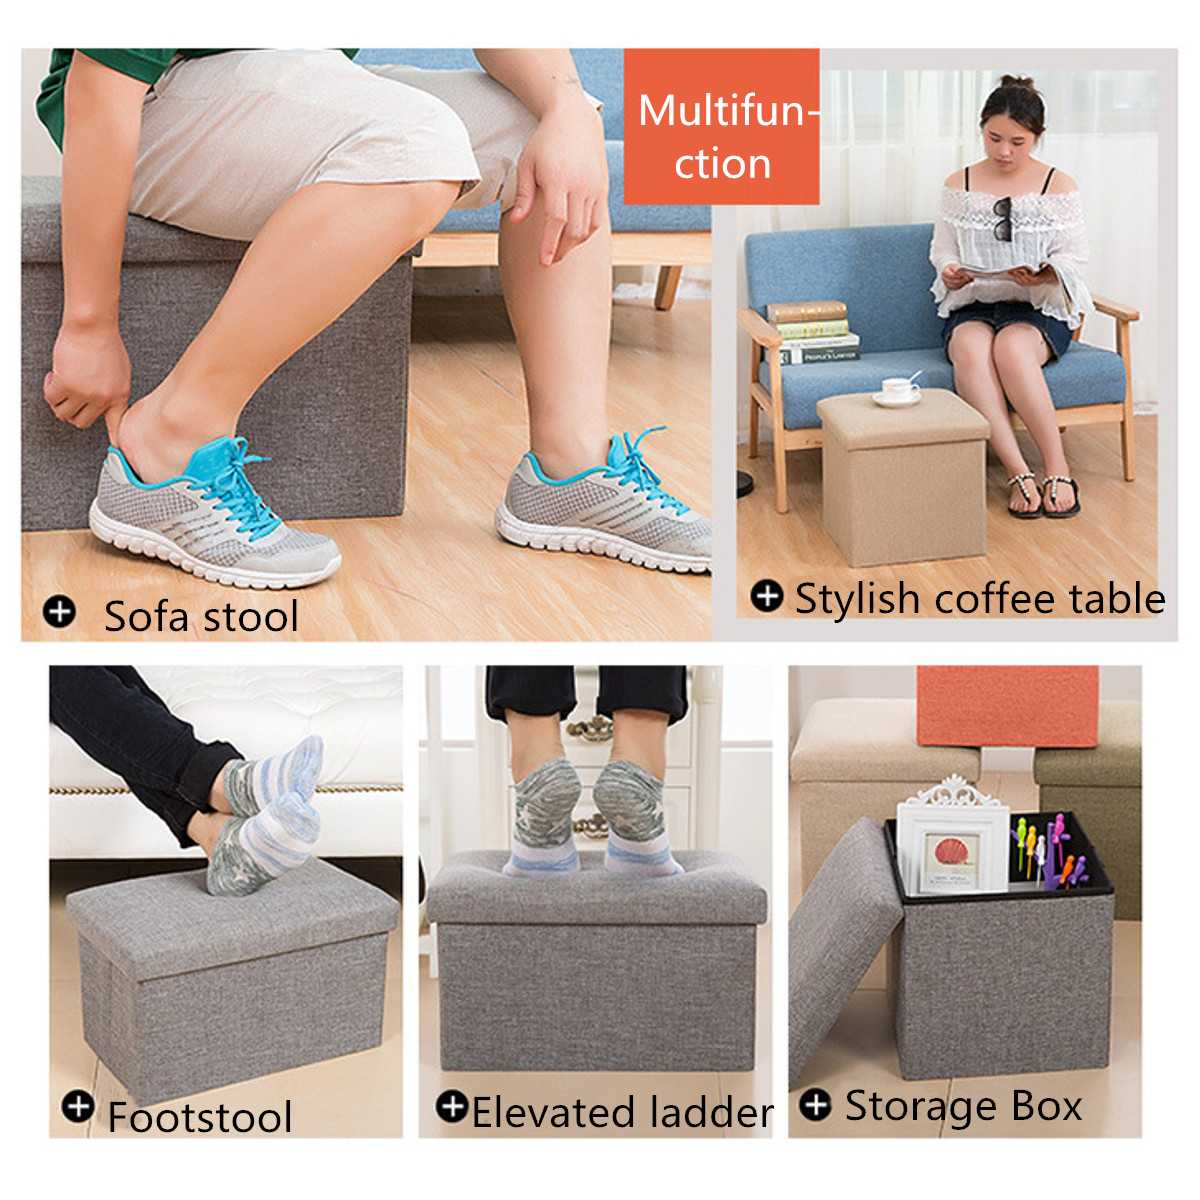 Folding Storage Stool Chairs Lounge Shoes bench Footstool Multifunction Storage Box Organizer Small Furniture Home Decoration